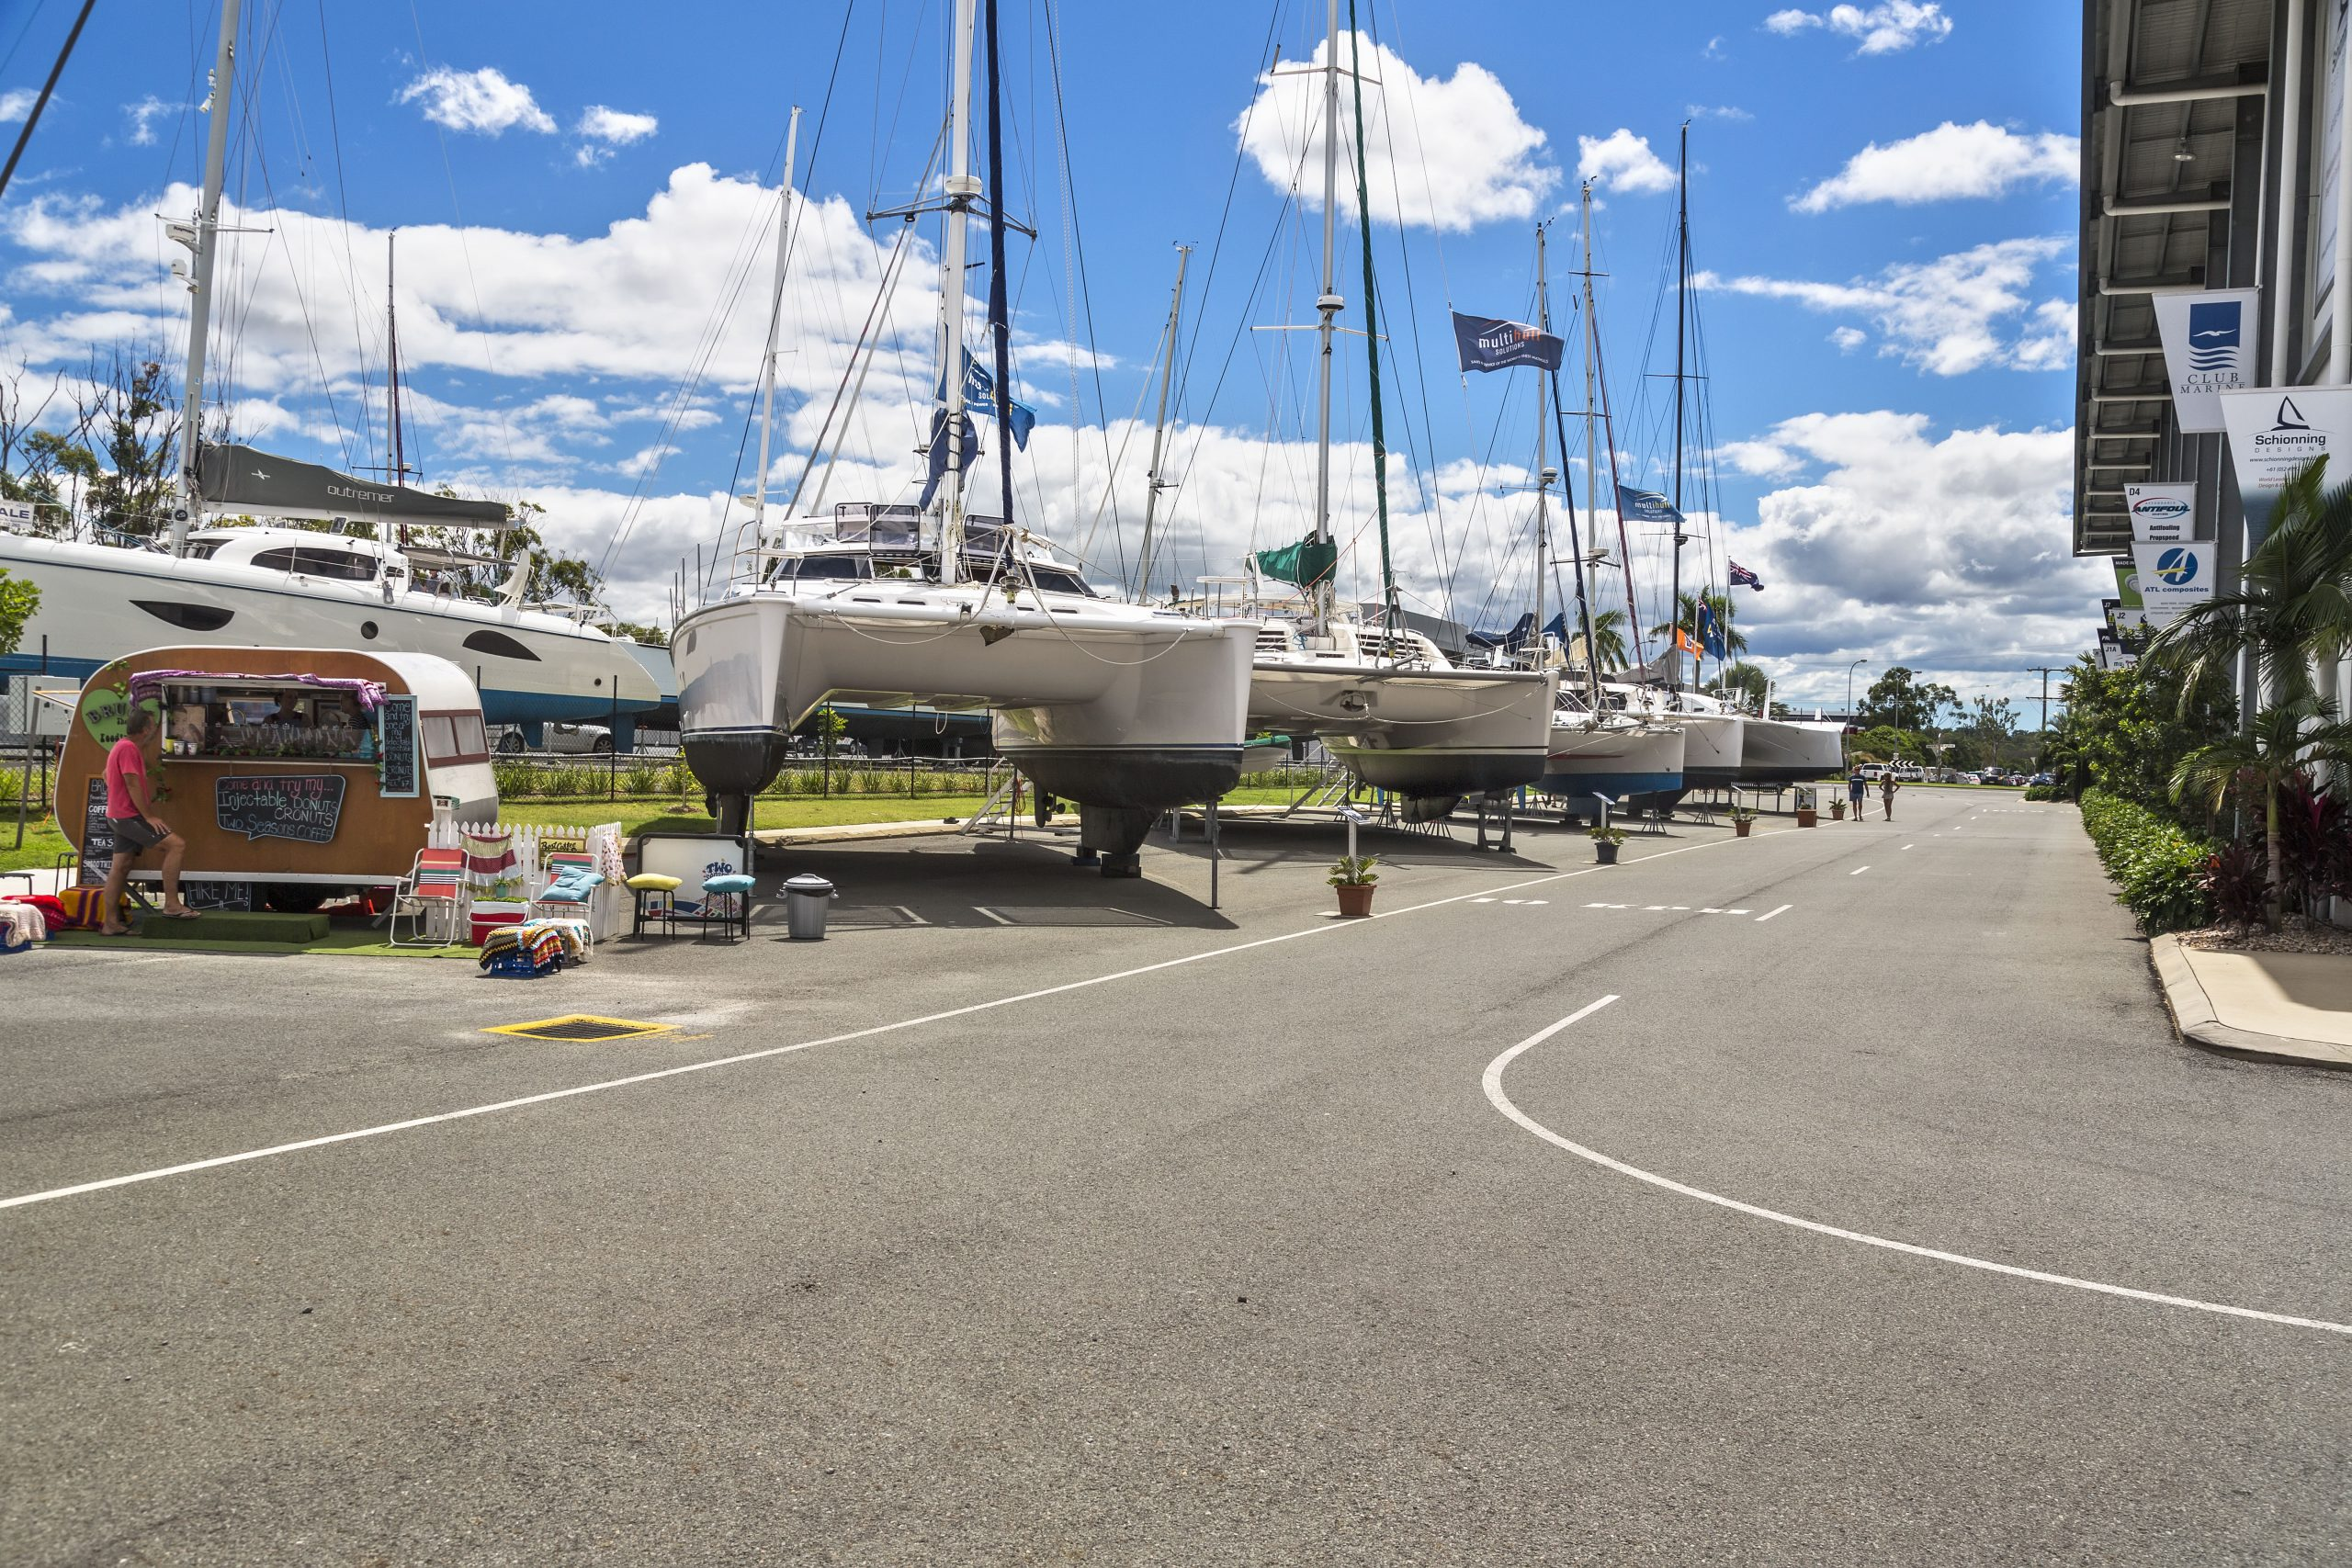 Multihull Boat Show coming up - Multihull Solutions pic